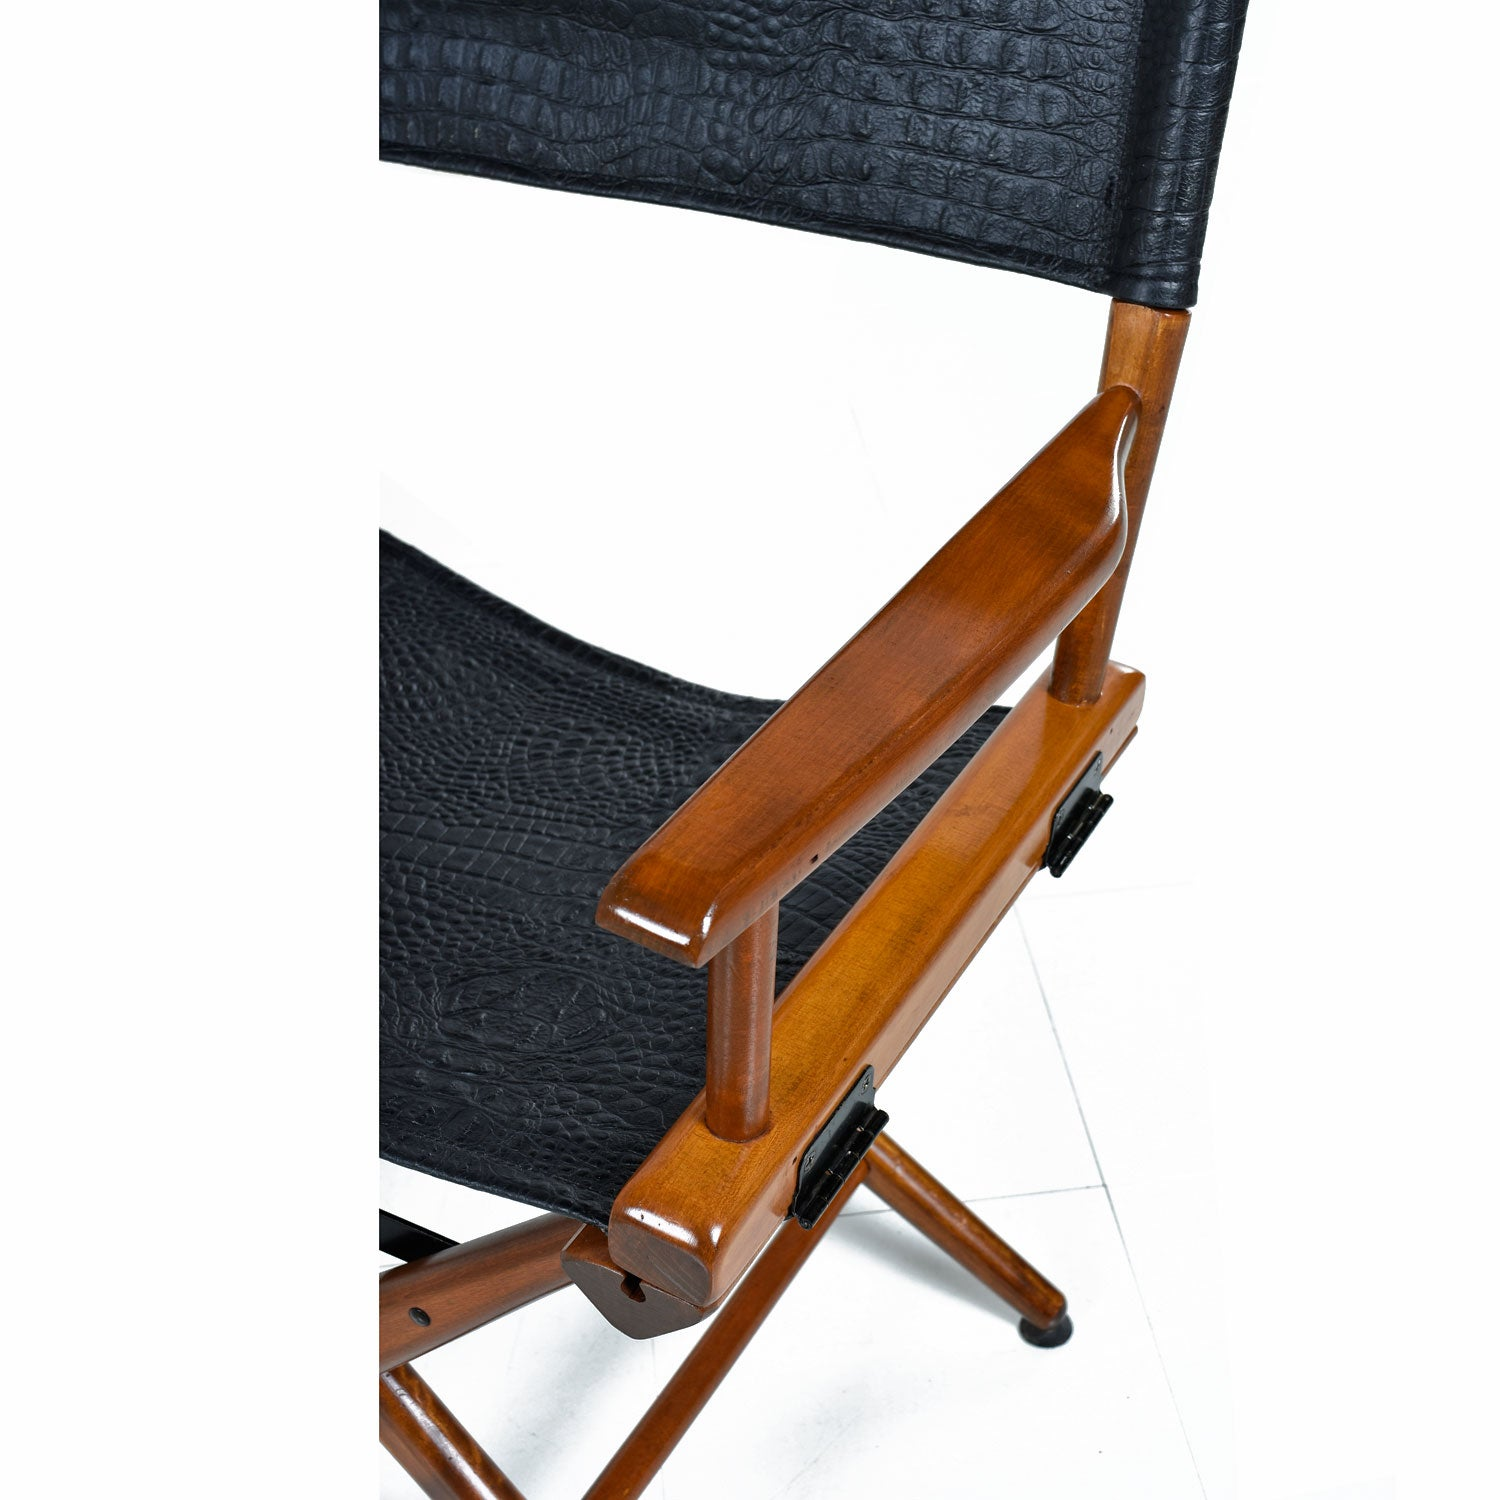 Director Chair Set By Telescope, Restored With Black Alligator Leather